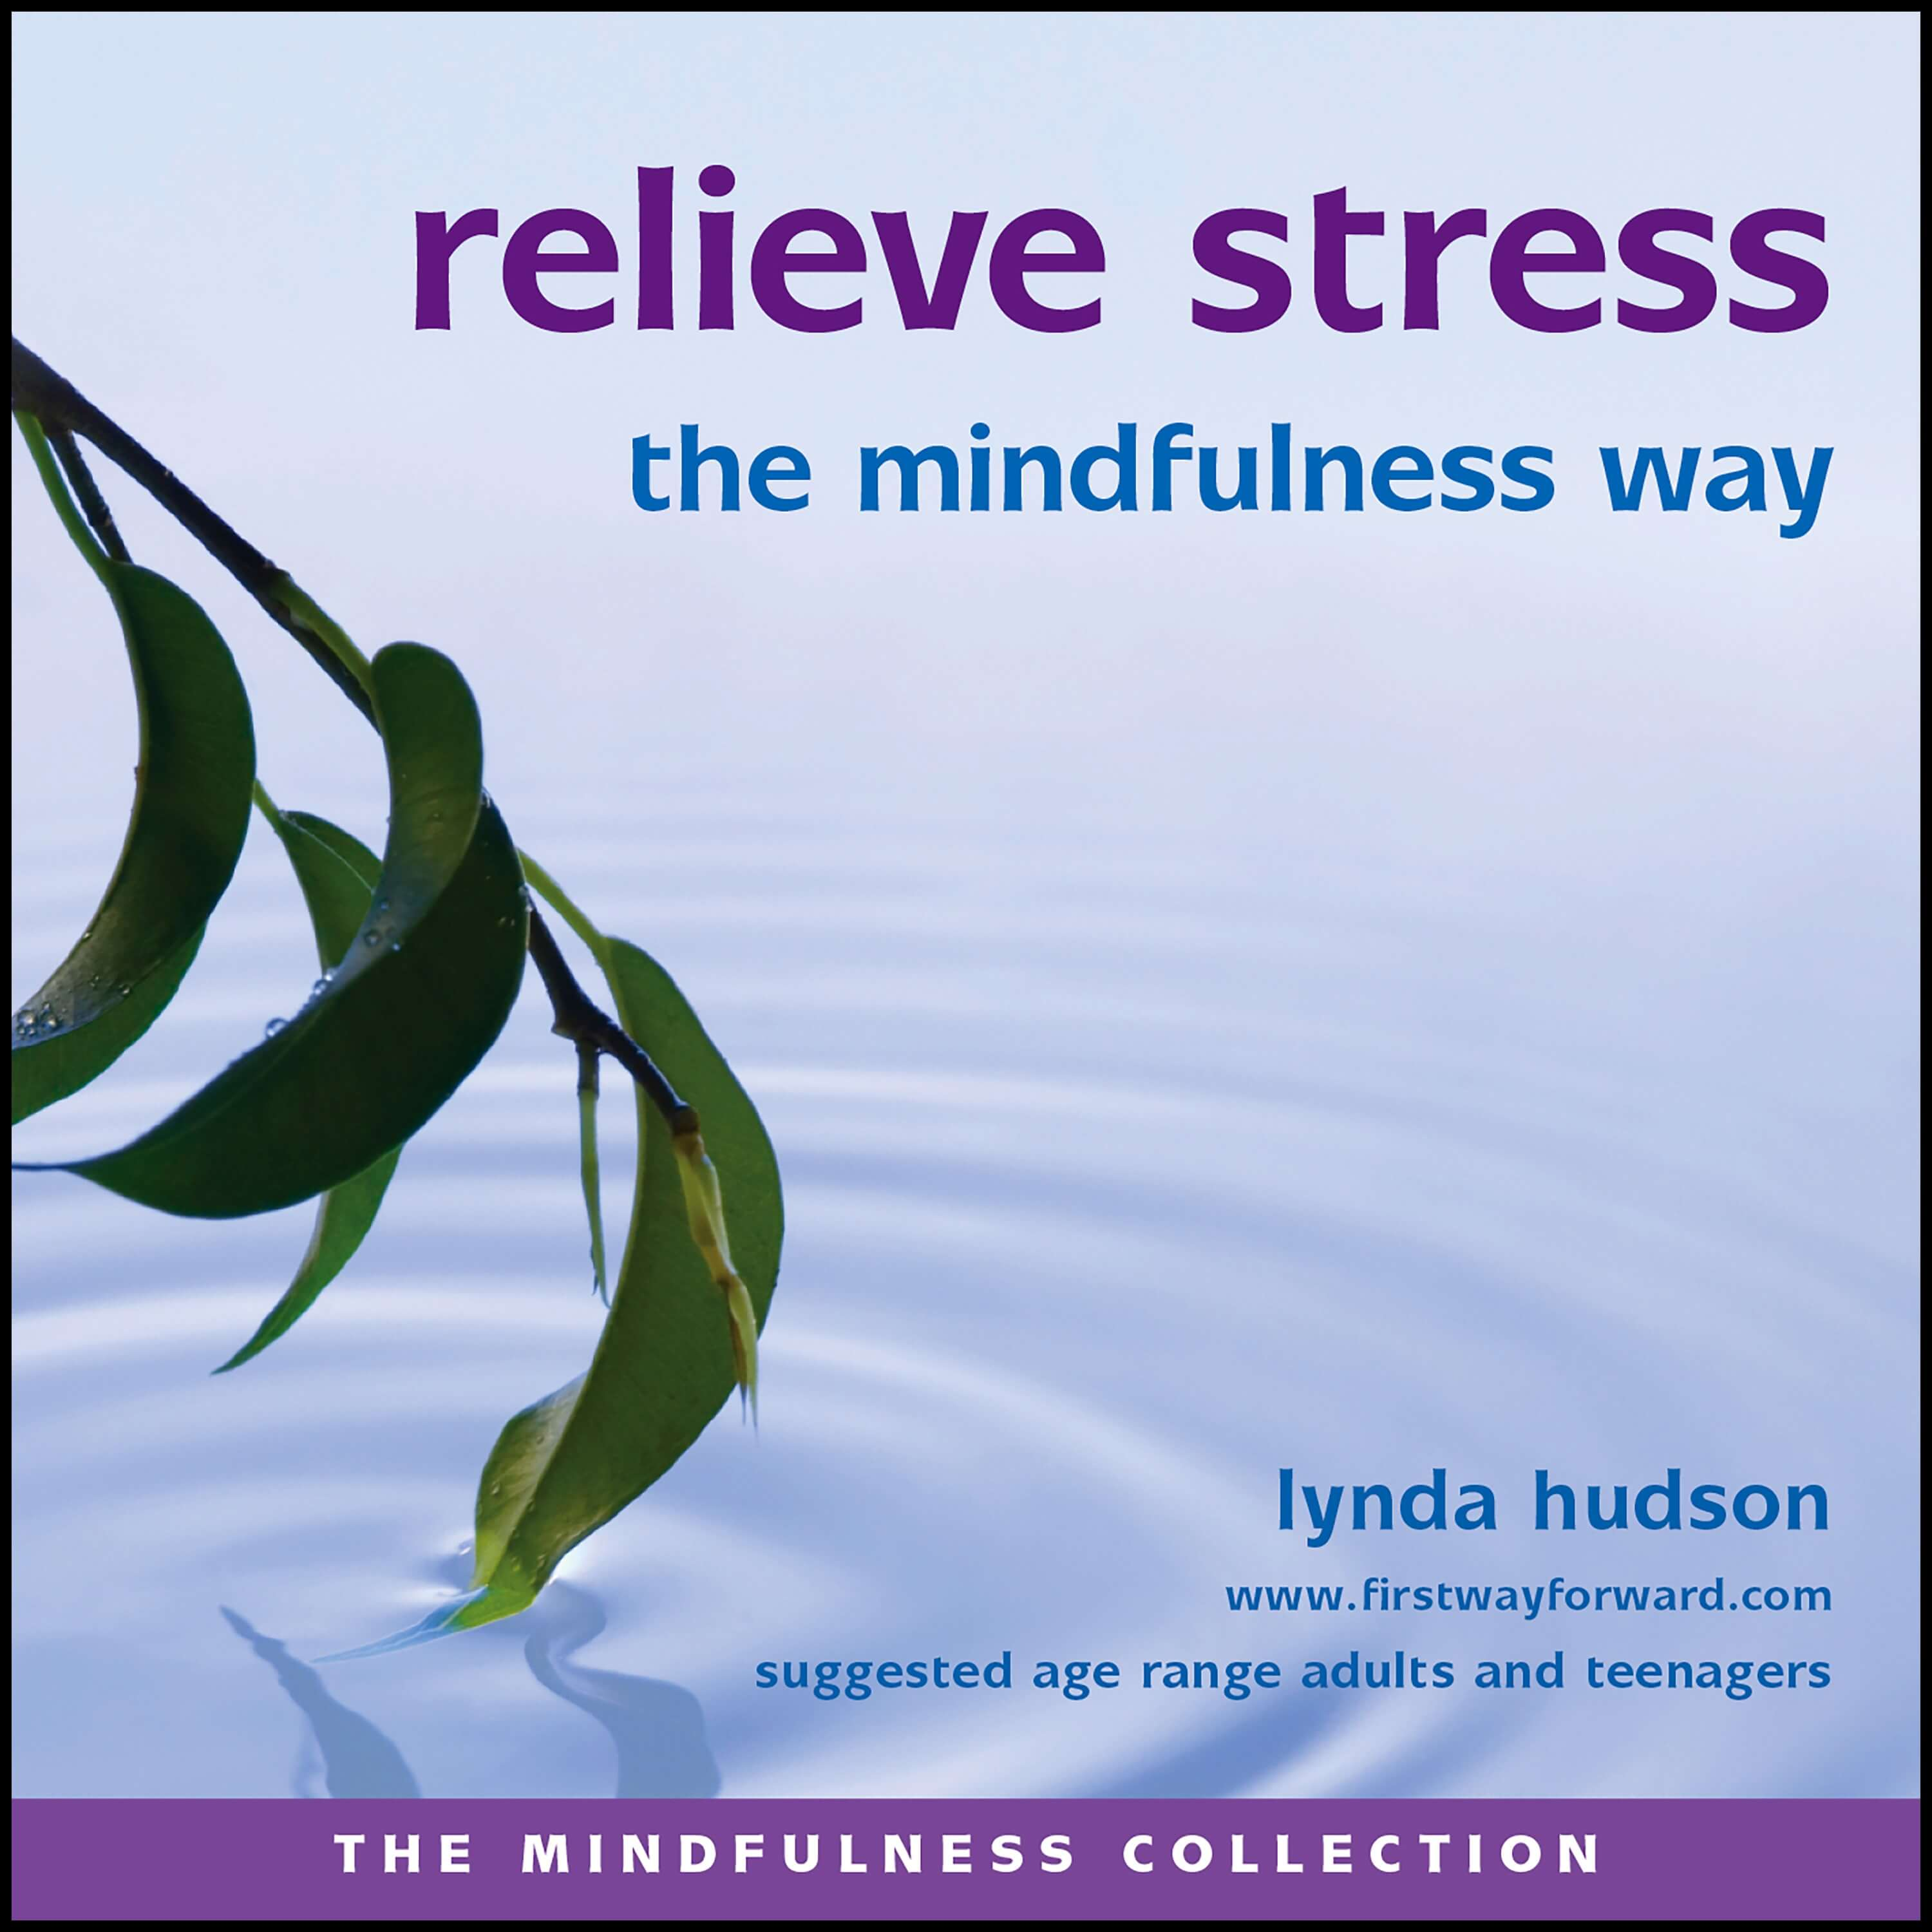 Relieve stress the mindfulness way